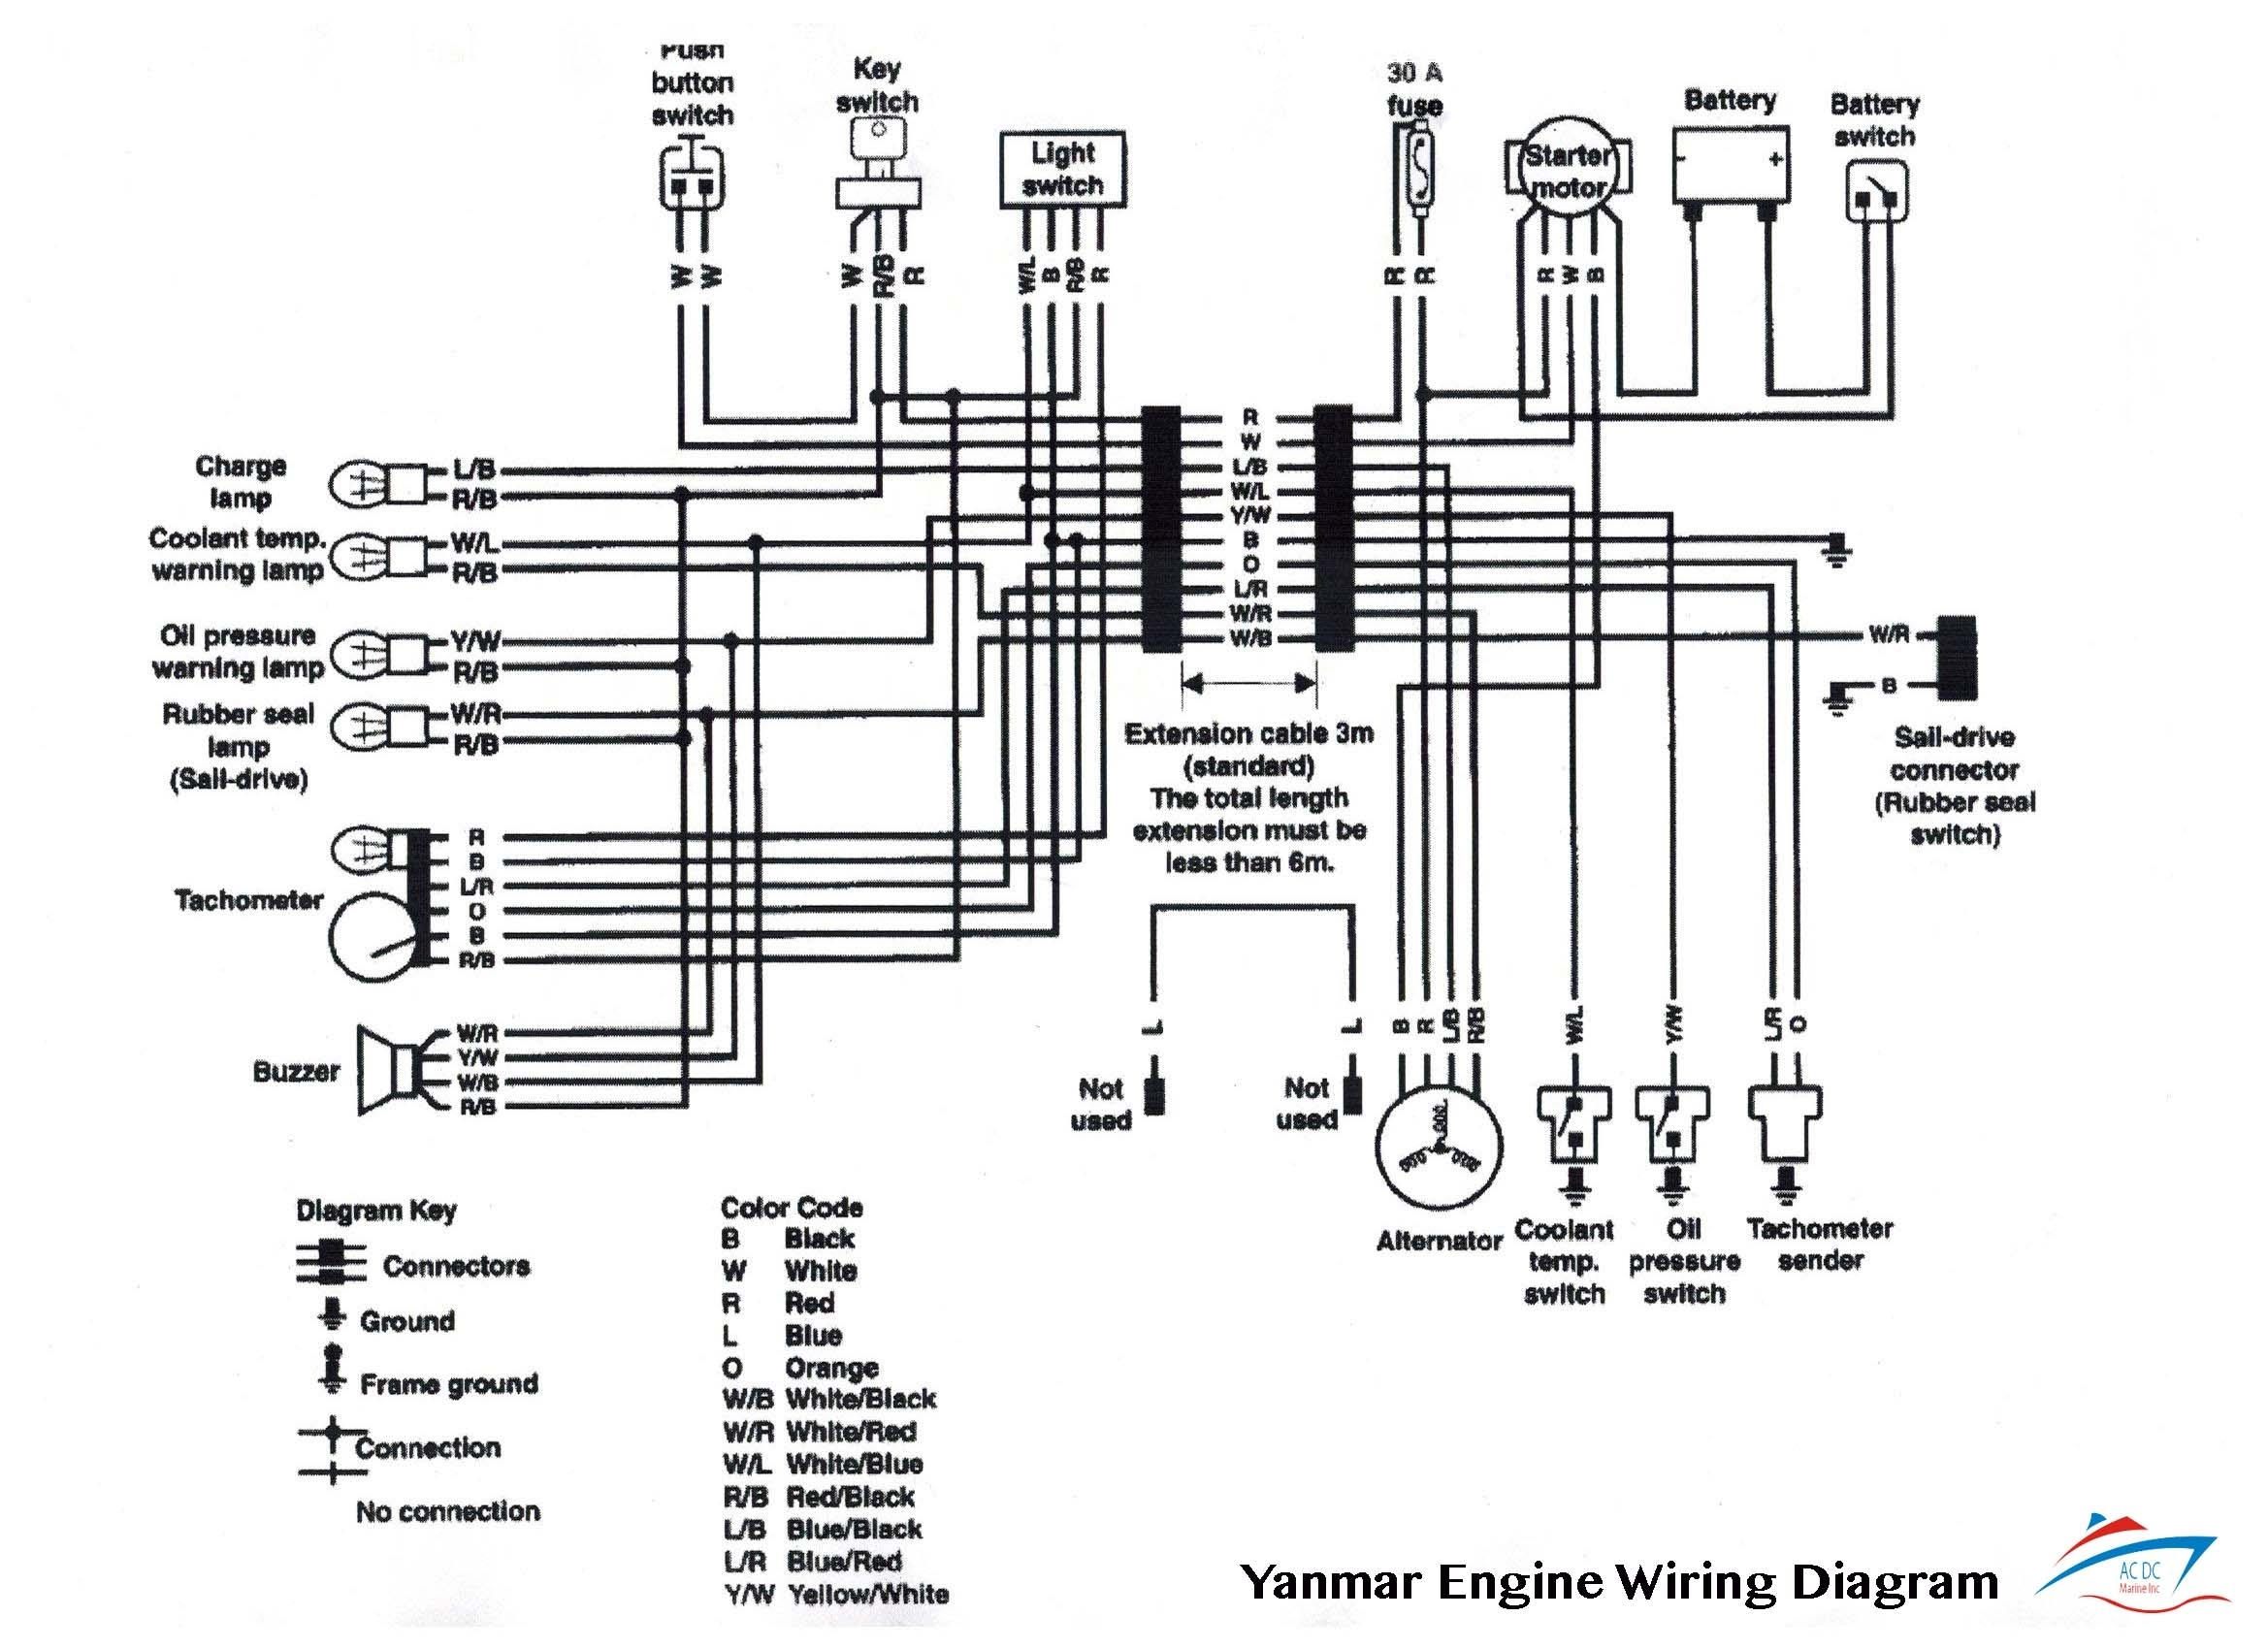 Peugeot 307 Alternator Wiring Diagram